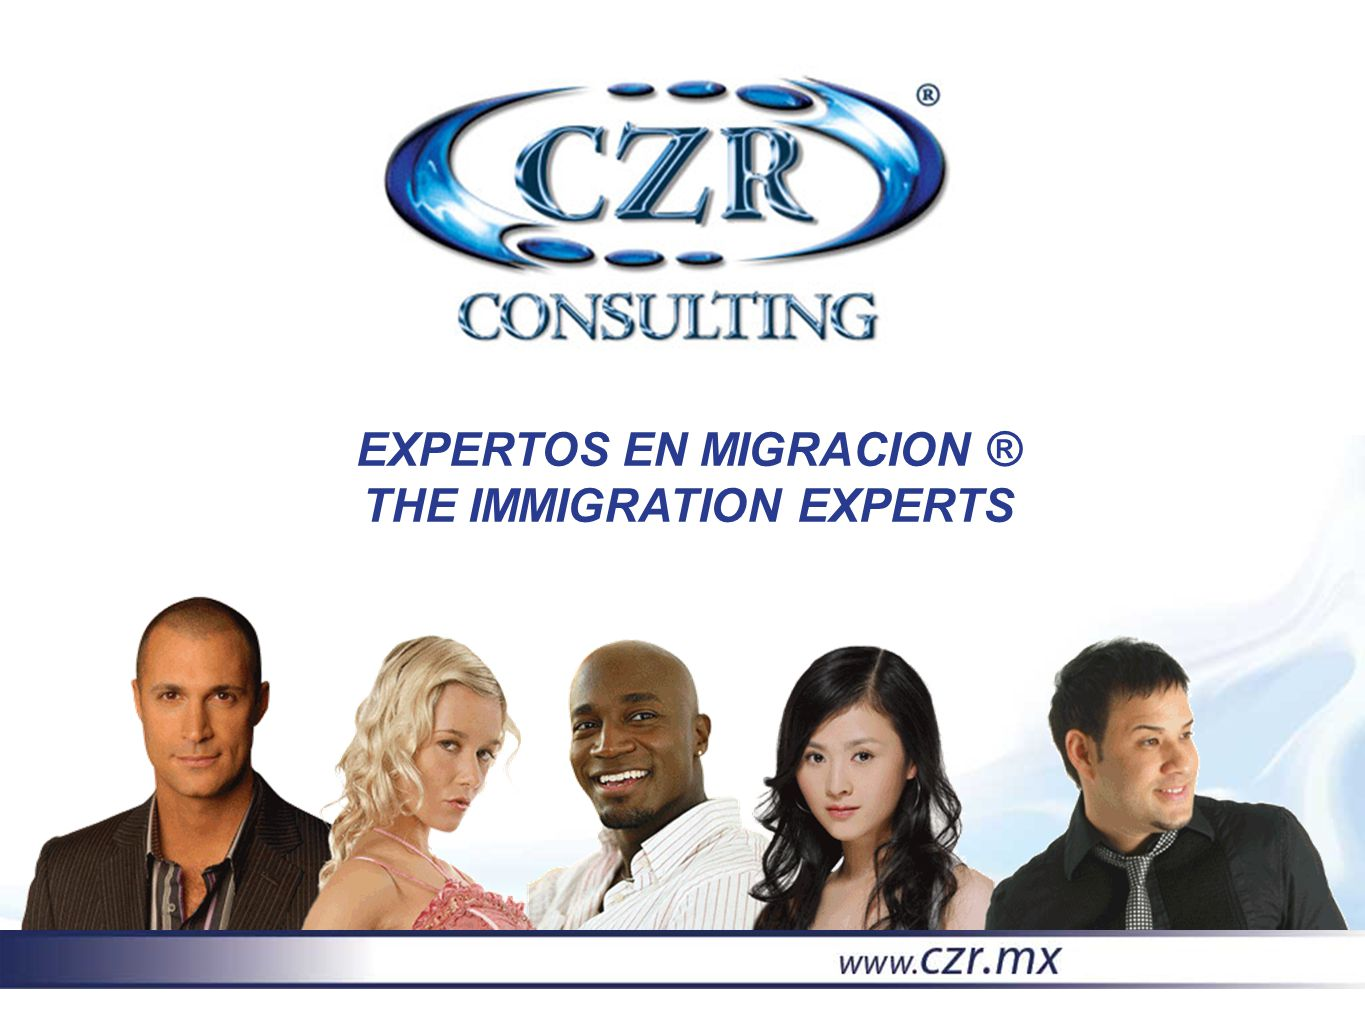 EXPERTOS EN MIGRACION ® THE IMMIGRATION EXPERTS